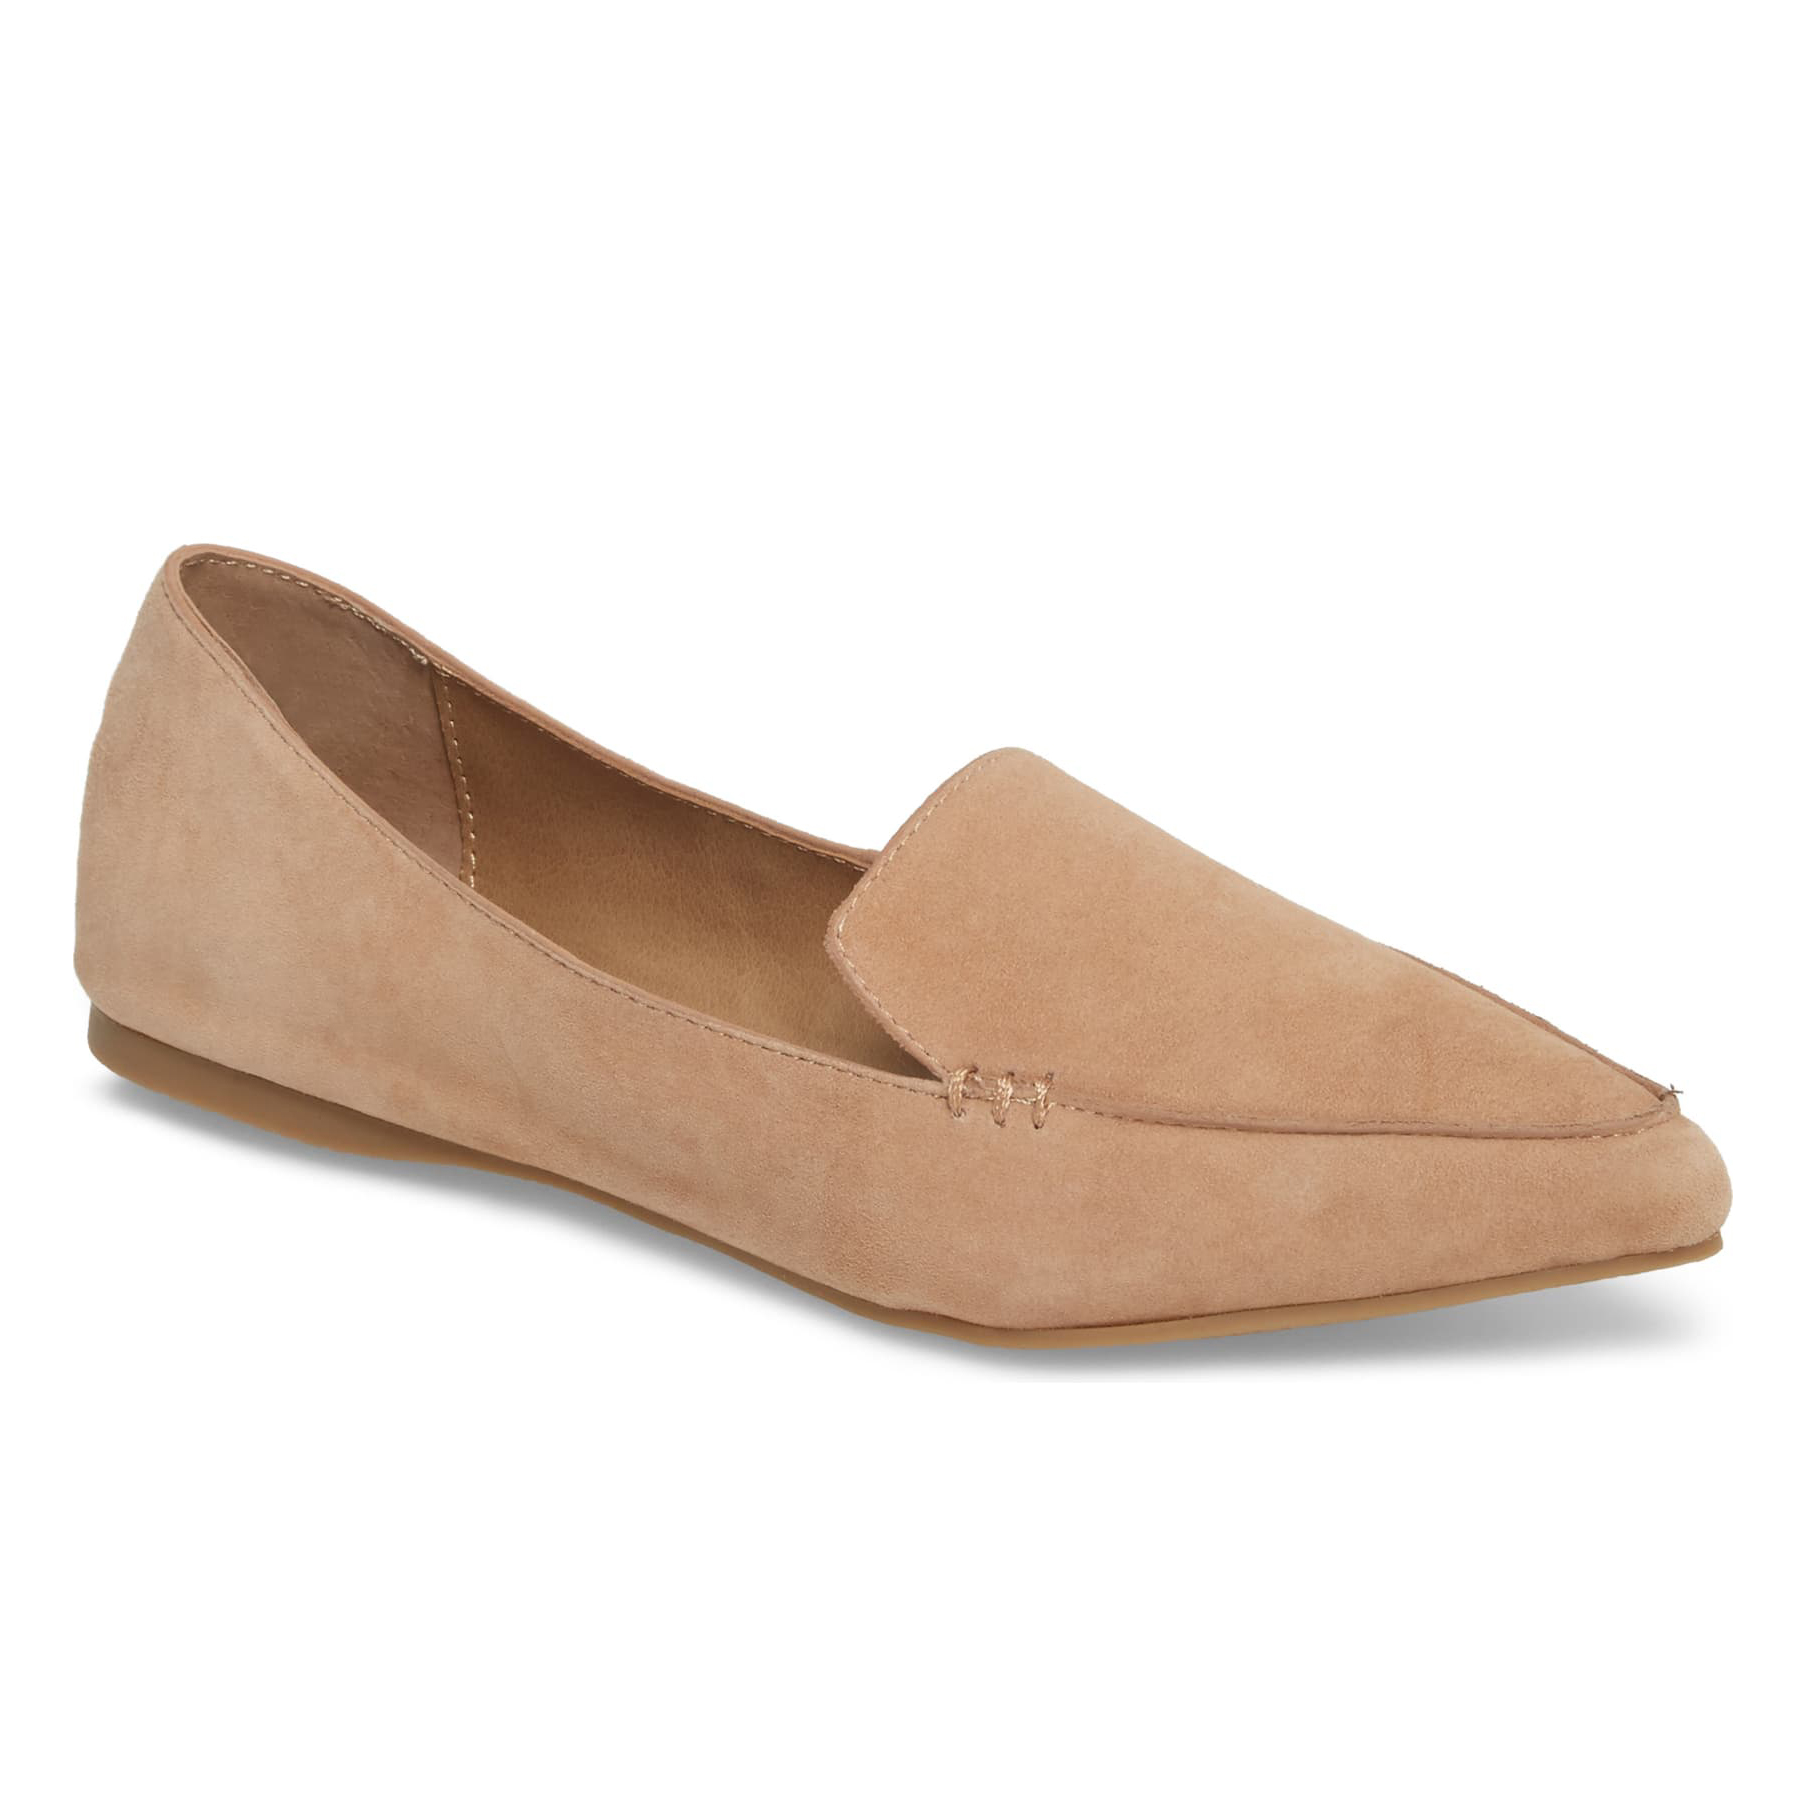 Steve Madden Feather Loafer Camel Suede Flat